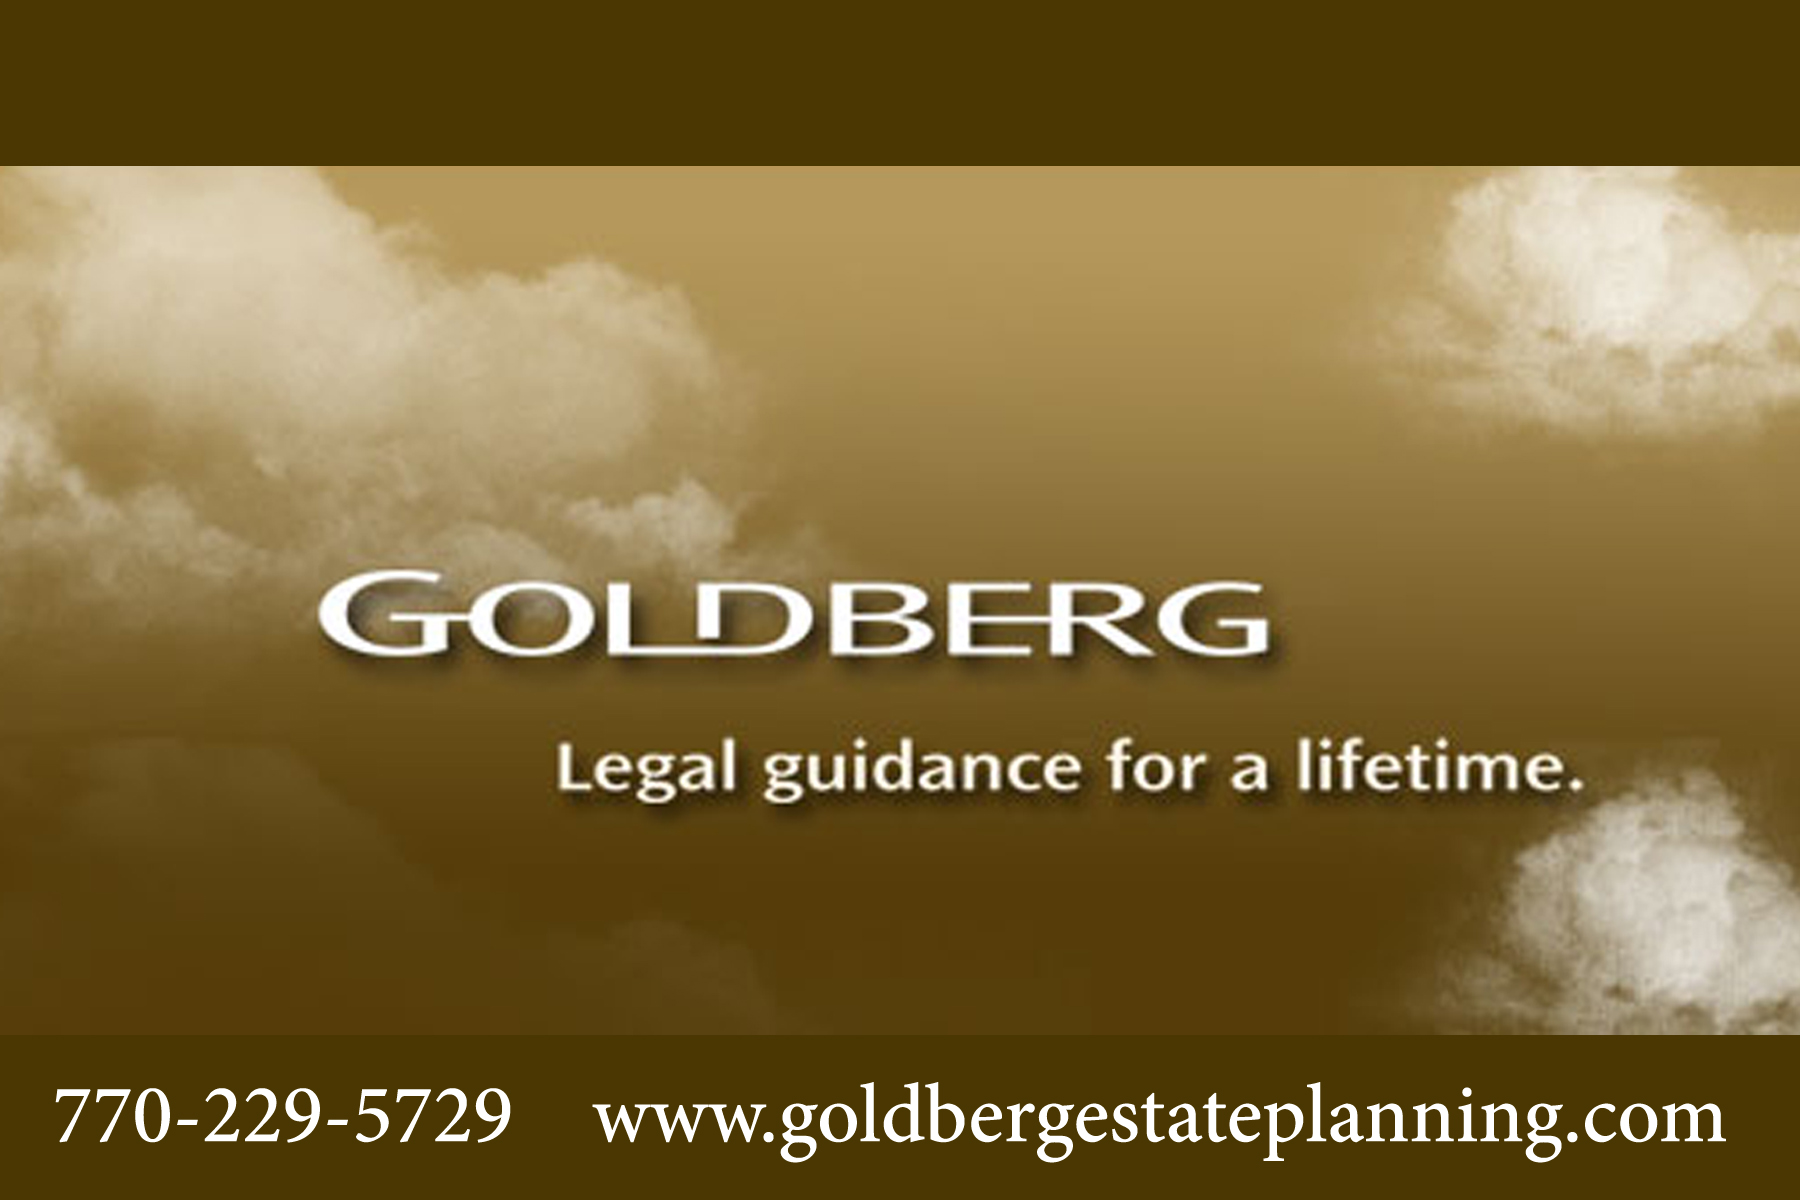 Goldberg Logo 2014.jpg